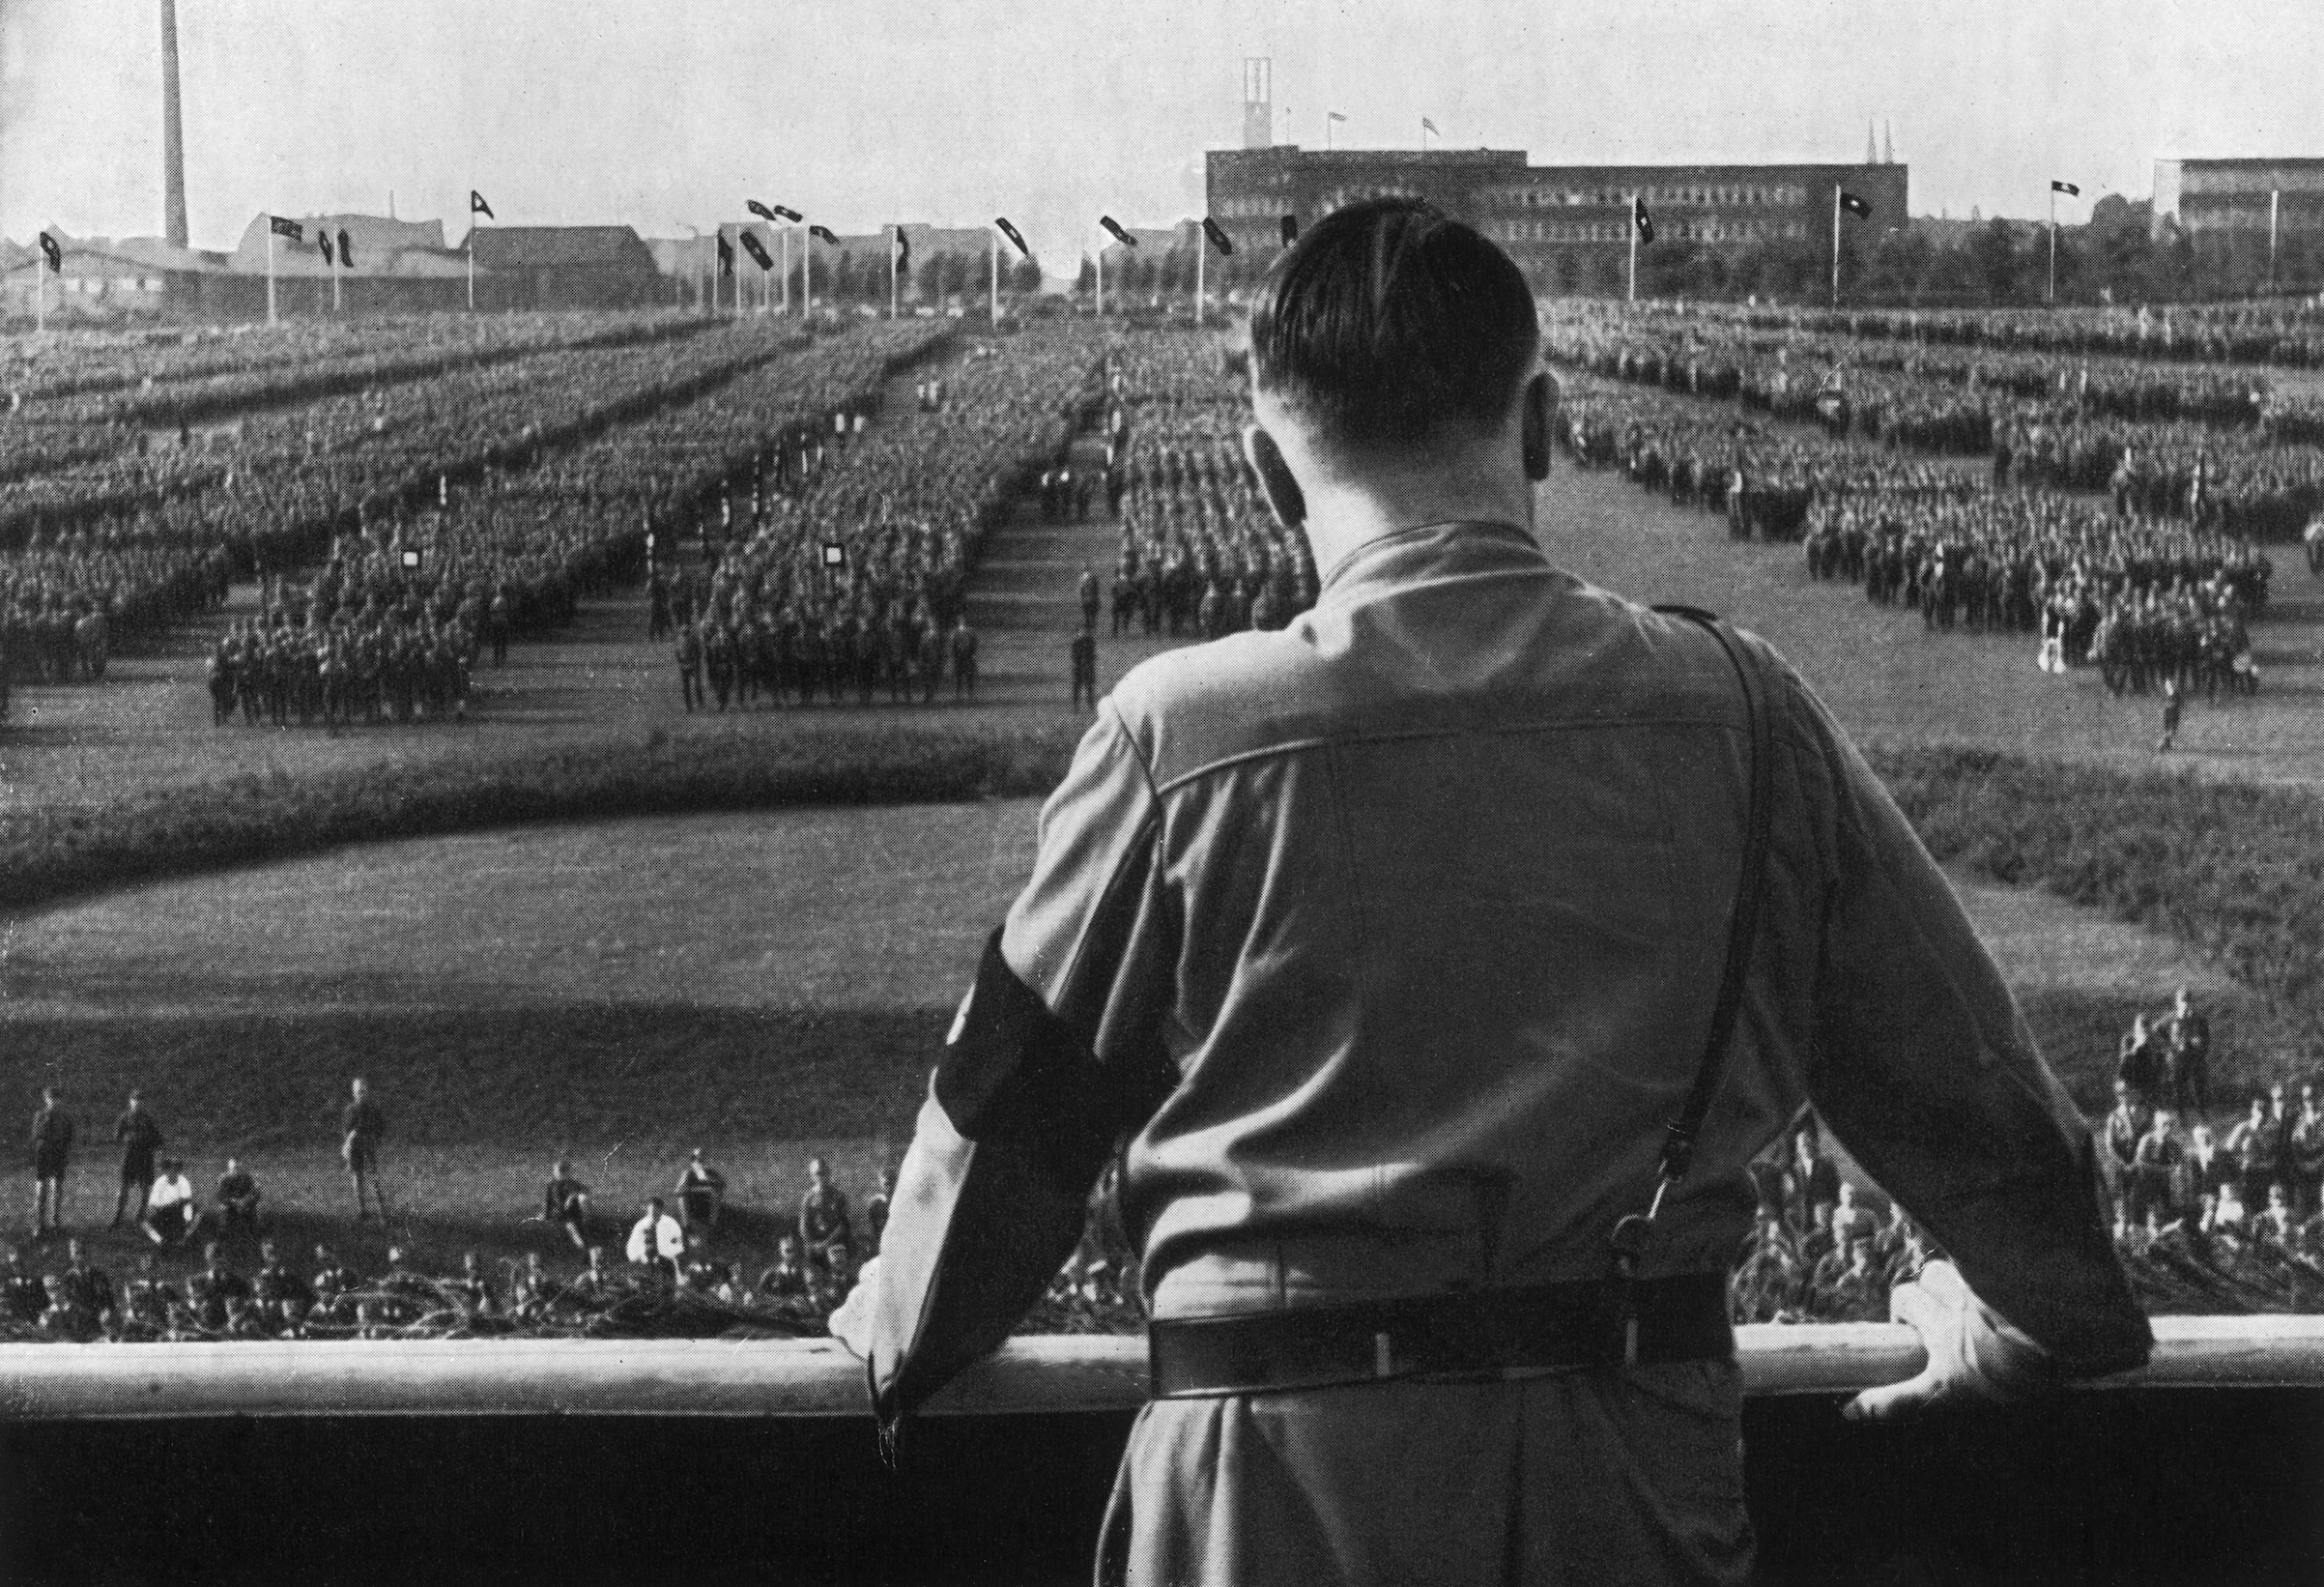 German Fuhrer and Nazi leader Adolf Hitler (1889 - 1945) addresses soldiers with his back facing the camera at a Nazi rally in Dortmund, Germany, in the 1930s.